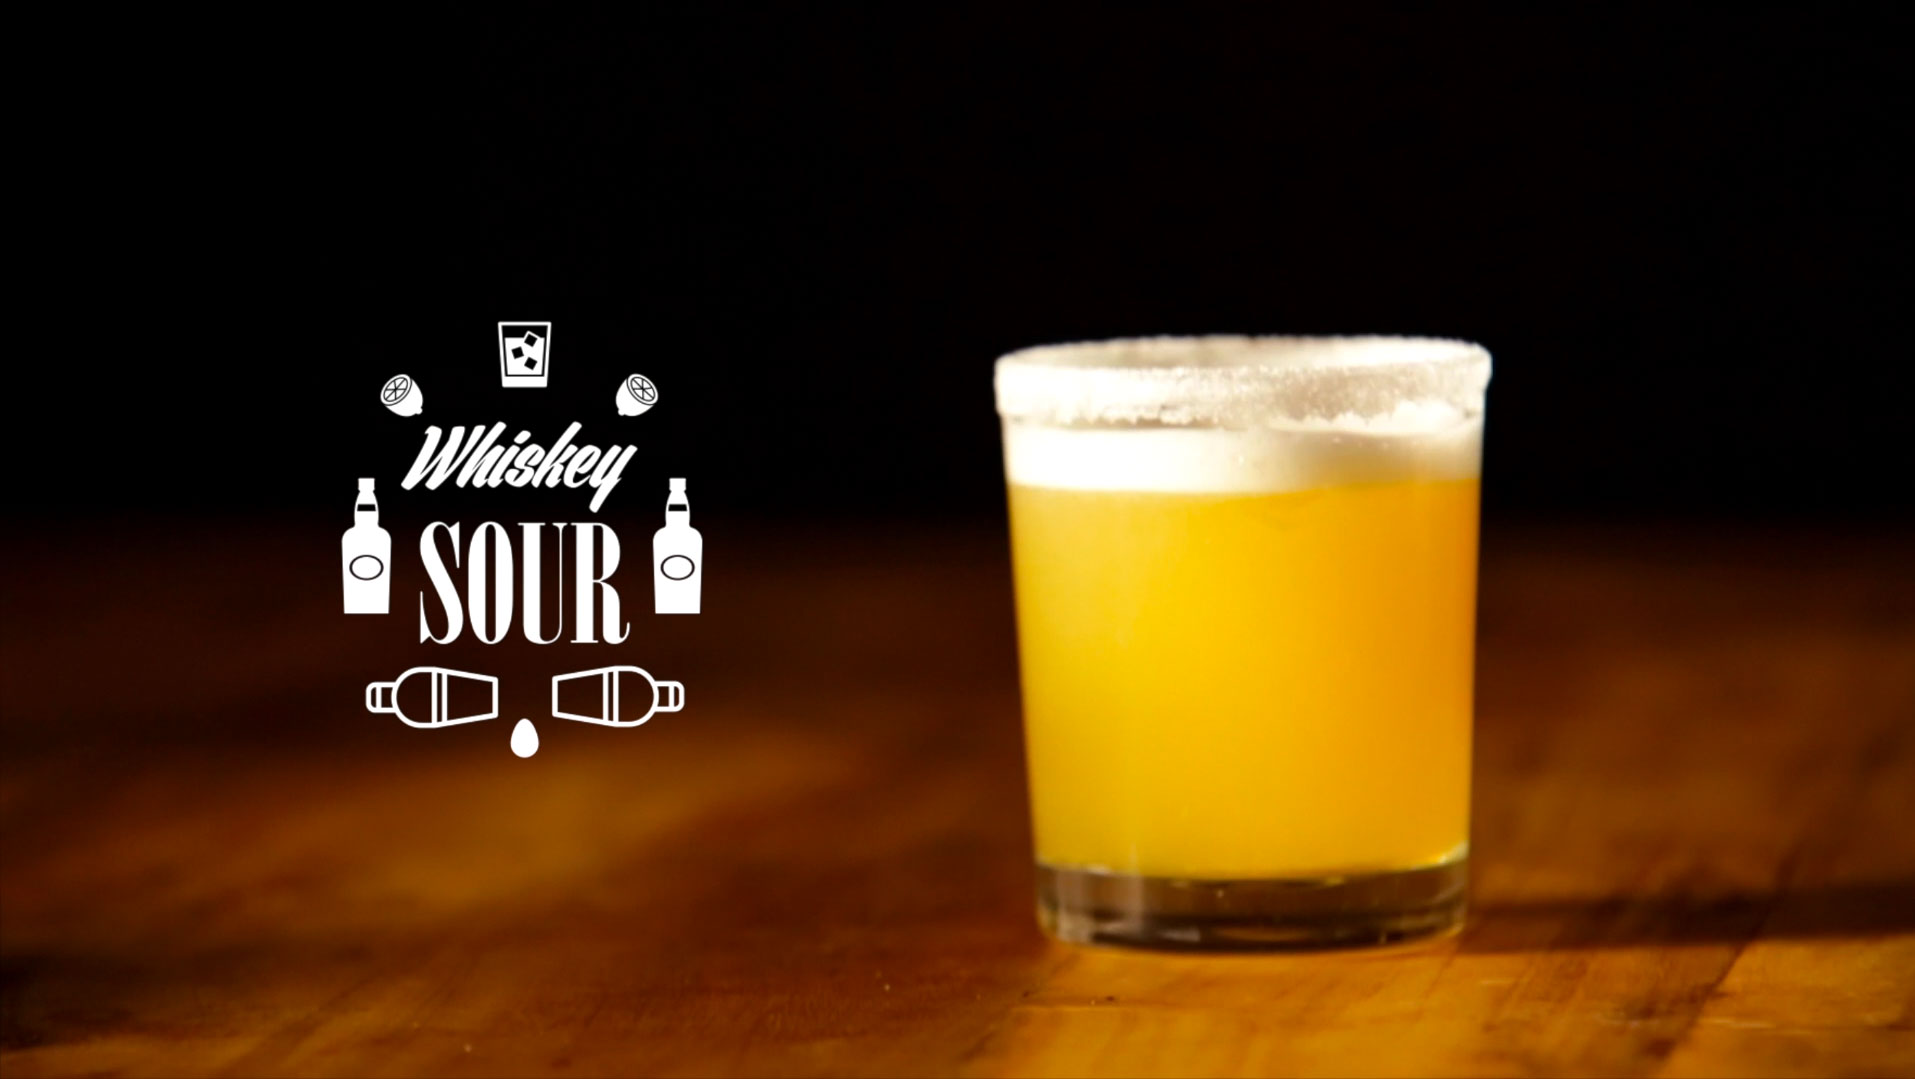 ... homemade whiskey sour recipe whiskey sour recipe the whiskey sour